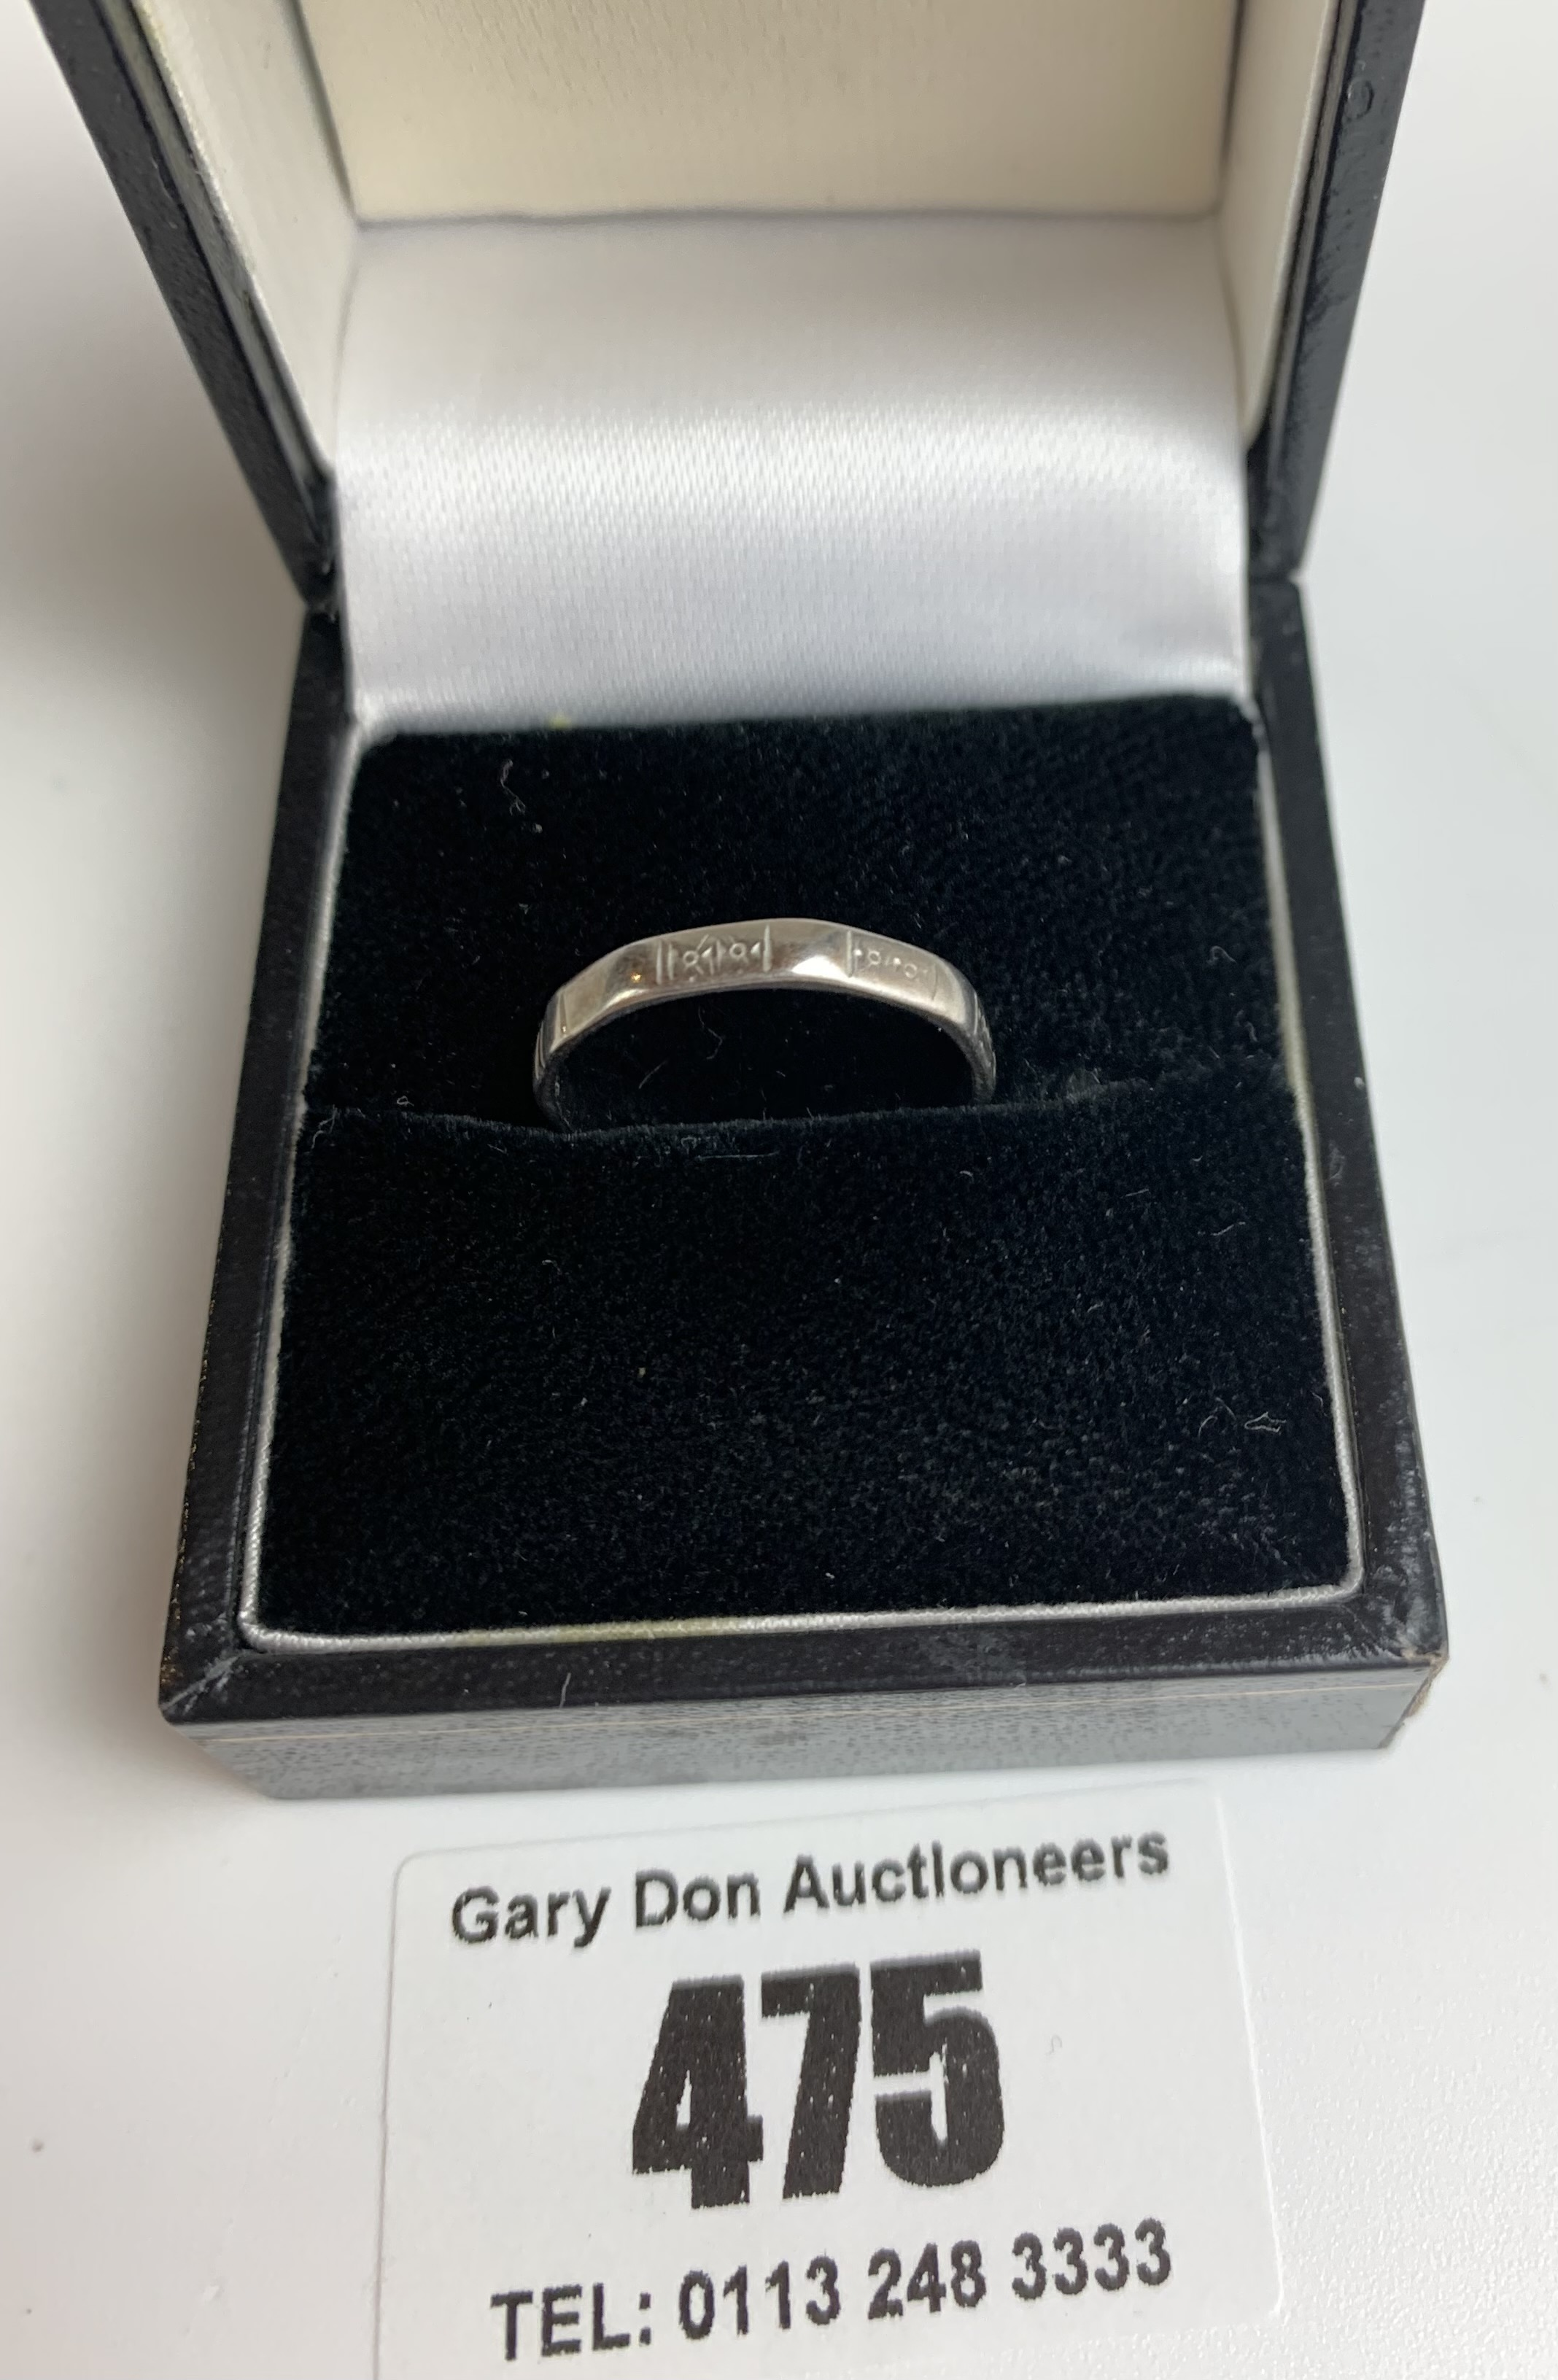 2 platinum wedding bands, sizes L and M, total w: 4.8 gms - Image 3 of 6